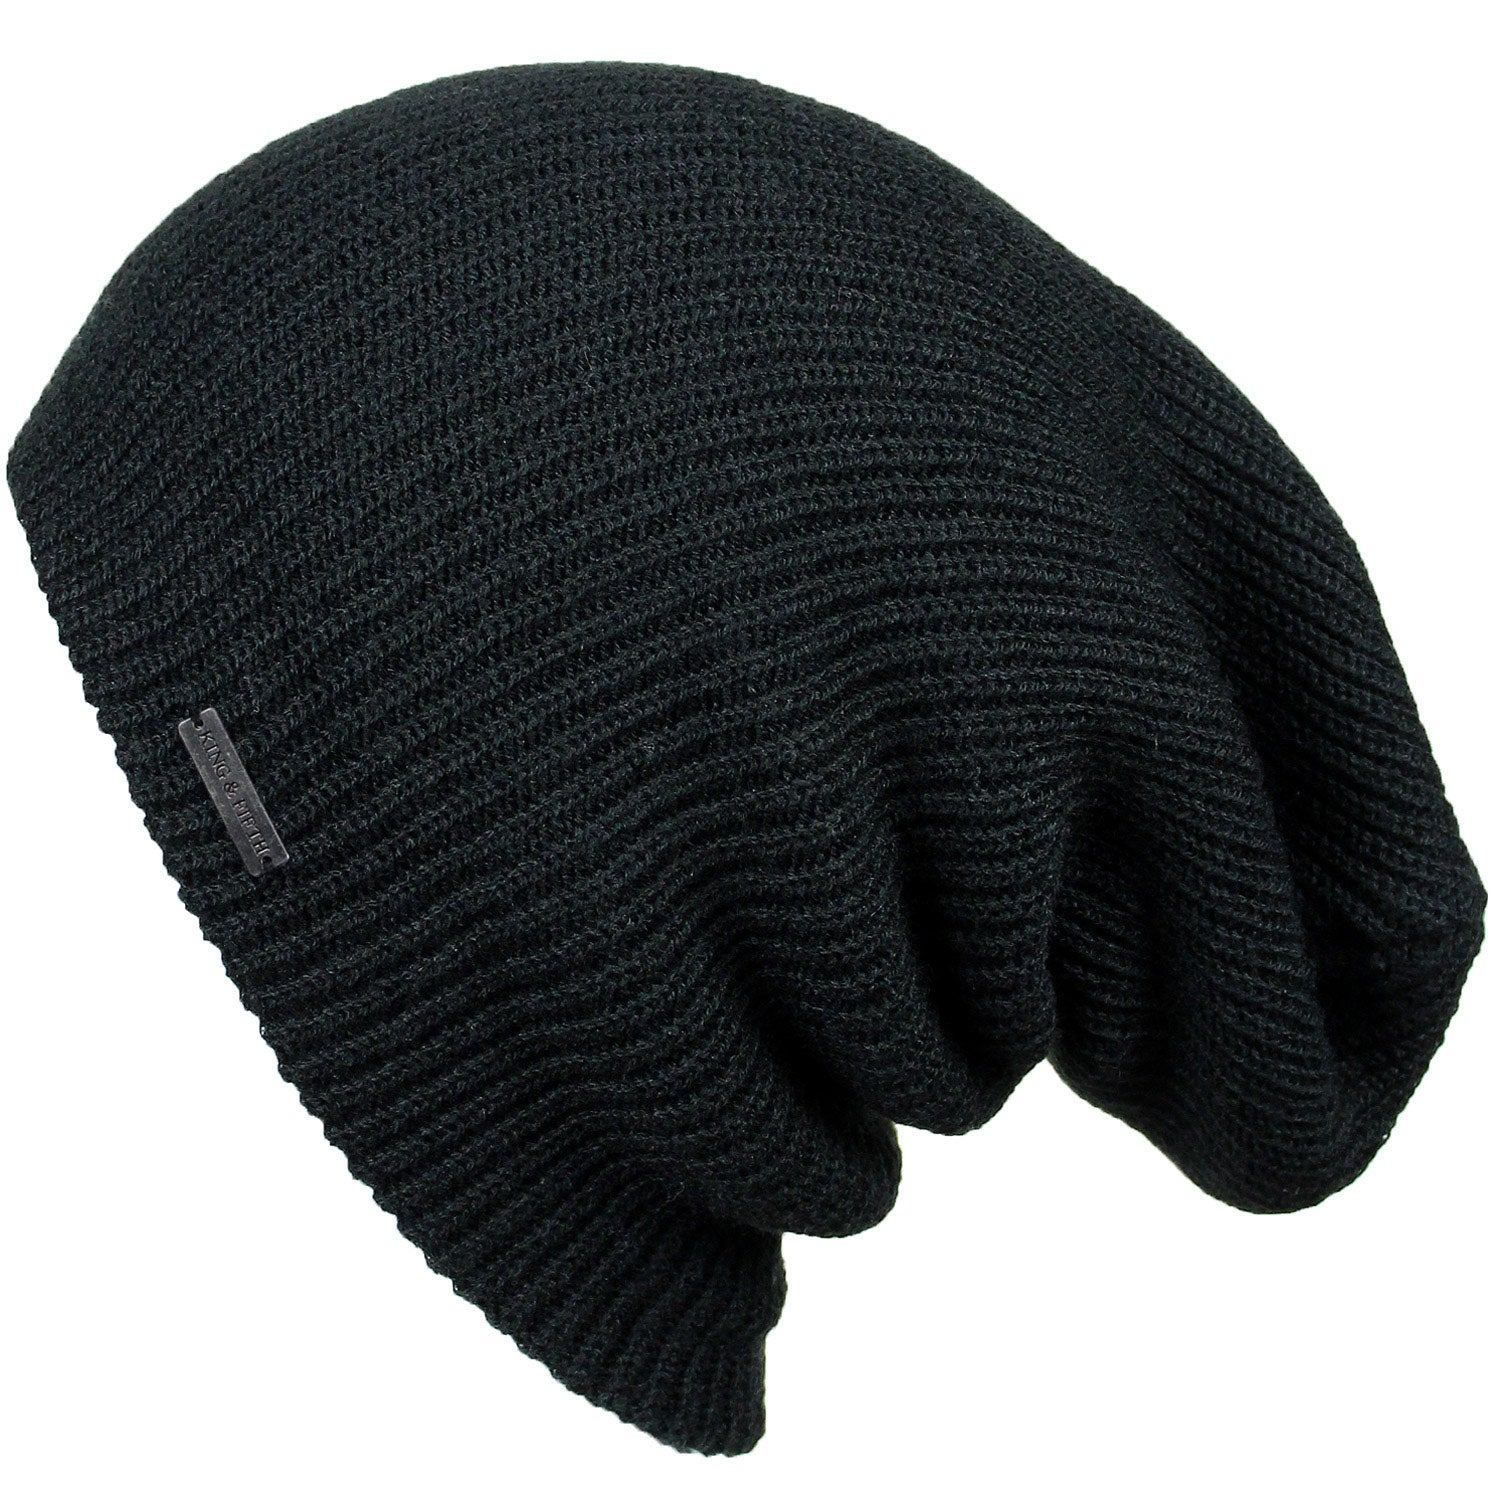 Mens Slouchy Beanie - The Forte- Black Beanie Hat - King and Fifth ... 2562ef4f776